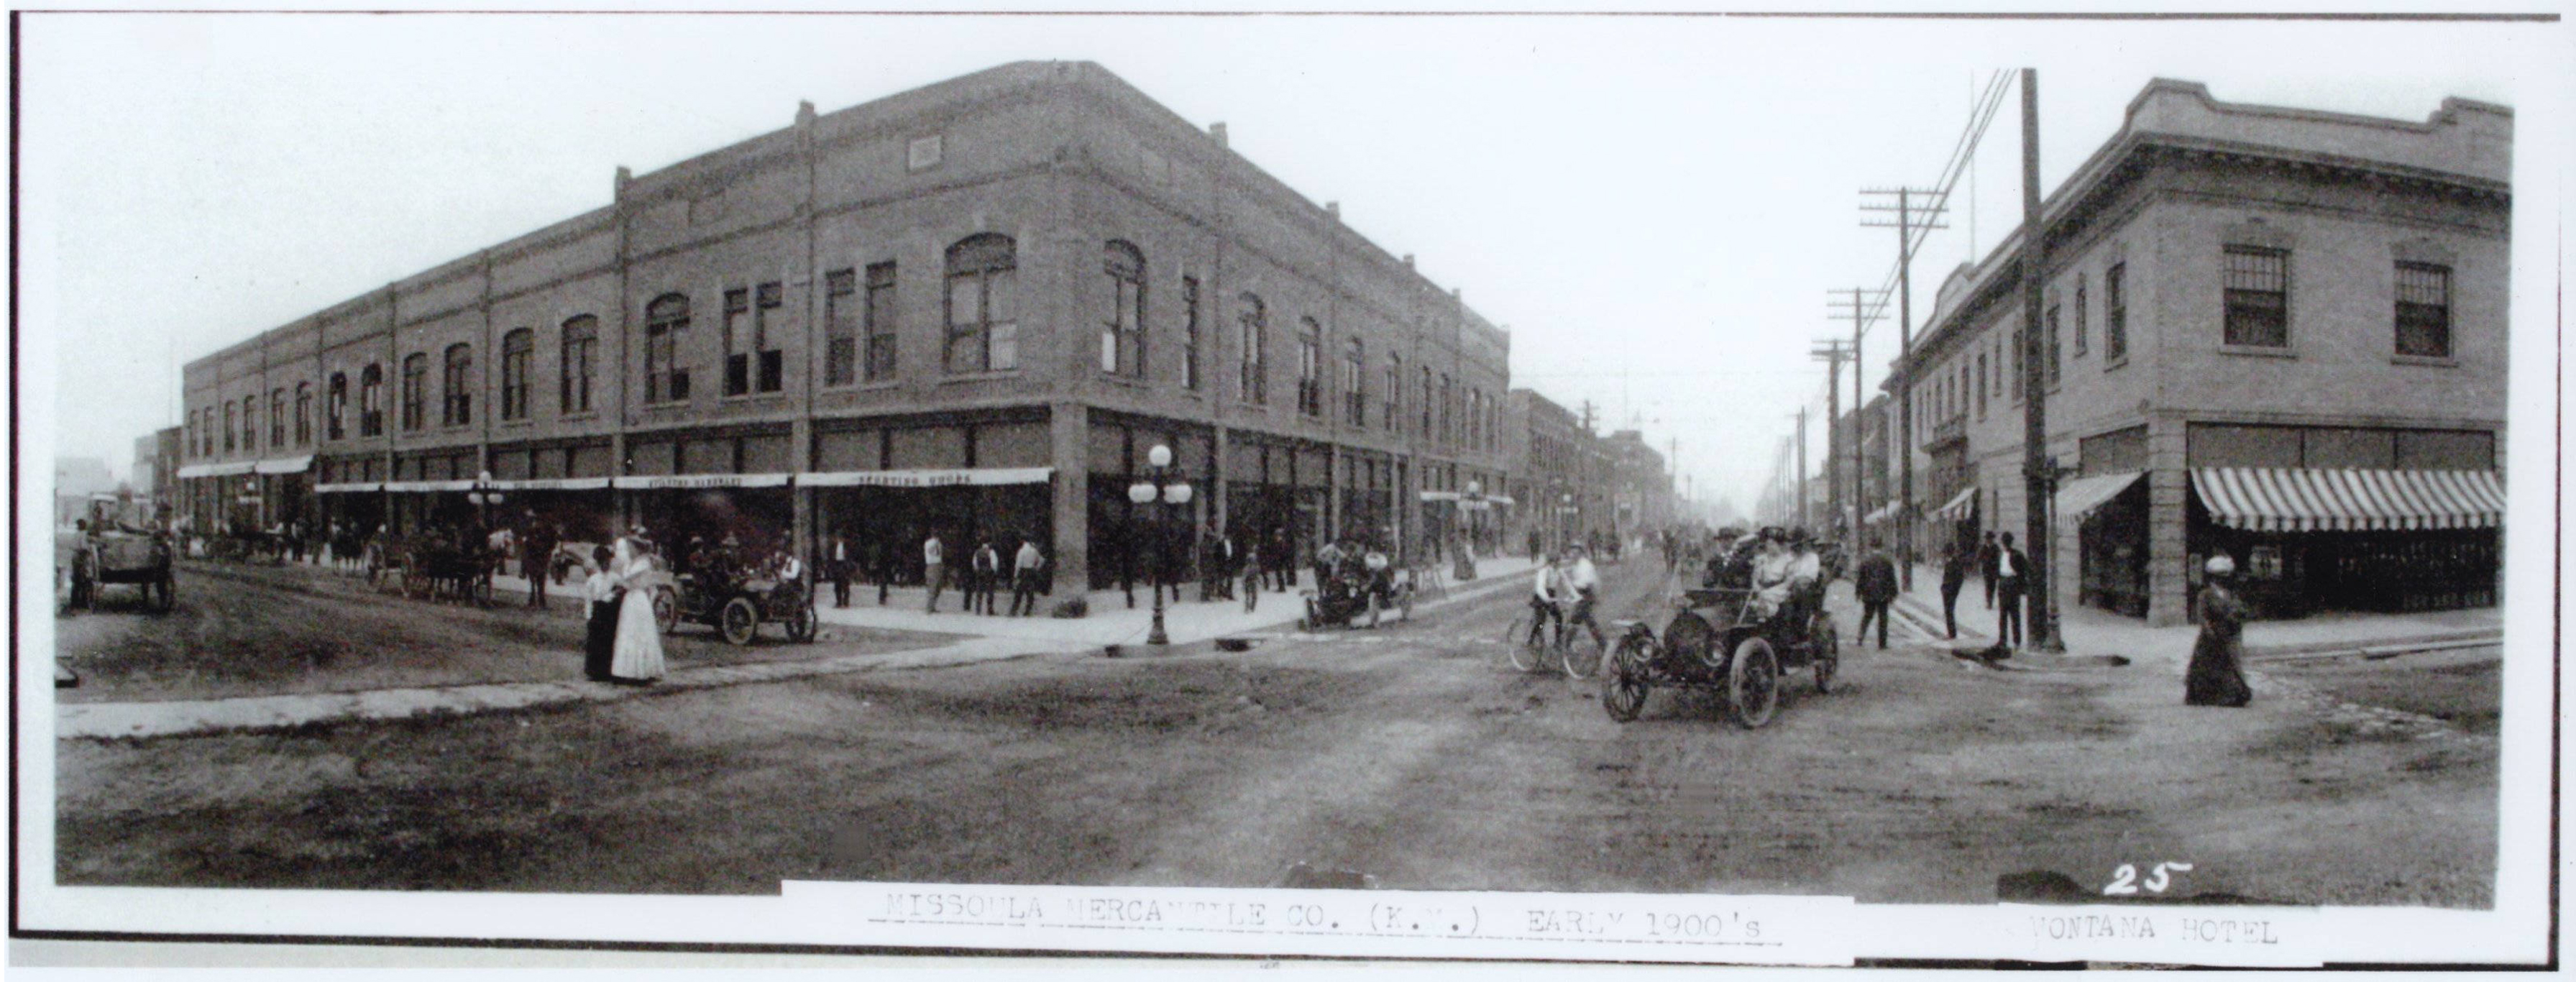 B and W wide angle photo of 2nd St looking west from 1st Ave East. The Missoula Mercantile Co., later (1911) known as the Kalsipell Mercantile Co., is on the left (SW corner) and the Montana Hotel right (NW corner) in the photo. Numerous people walking or riding bicycles. There are a mix of horse drawn wagons as well as early model automobiles. Caption reads, 'Missoula Mercantile (K.M.) Early 1900's. Montana Hotel.' The Montana Hotel was built in 1909.